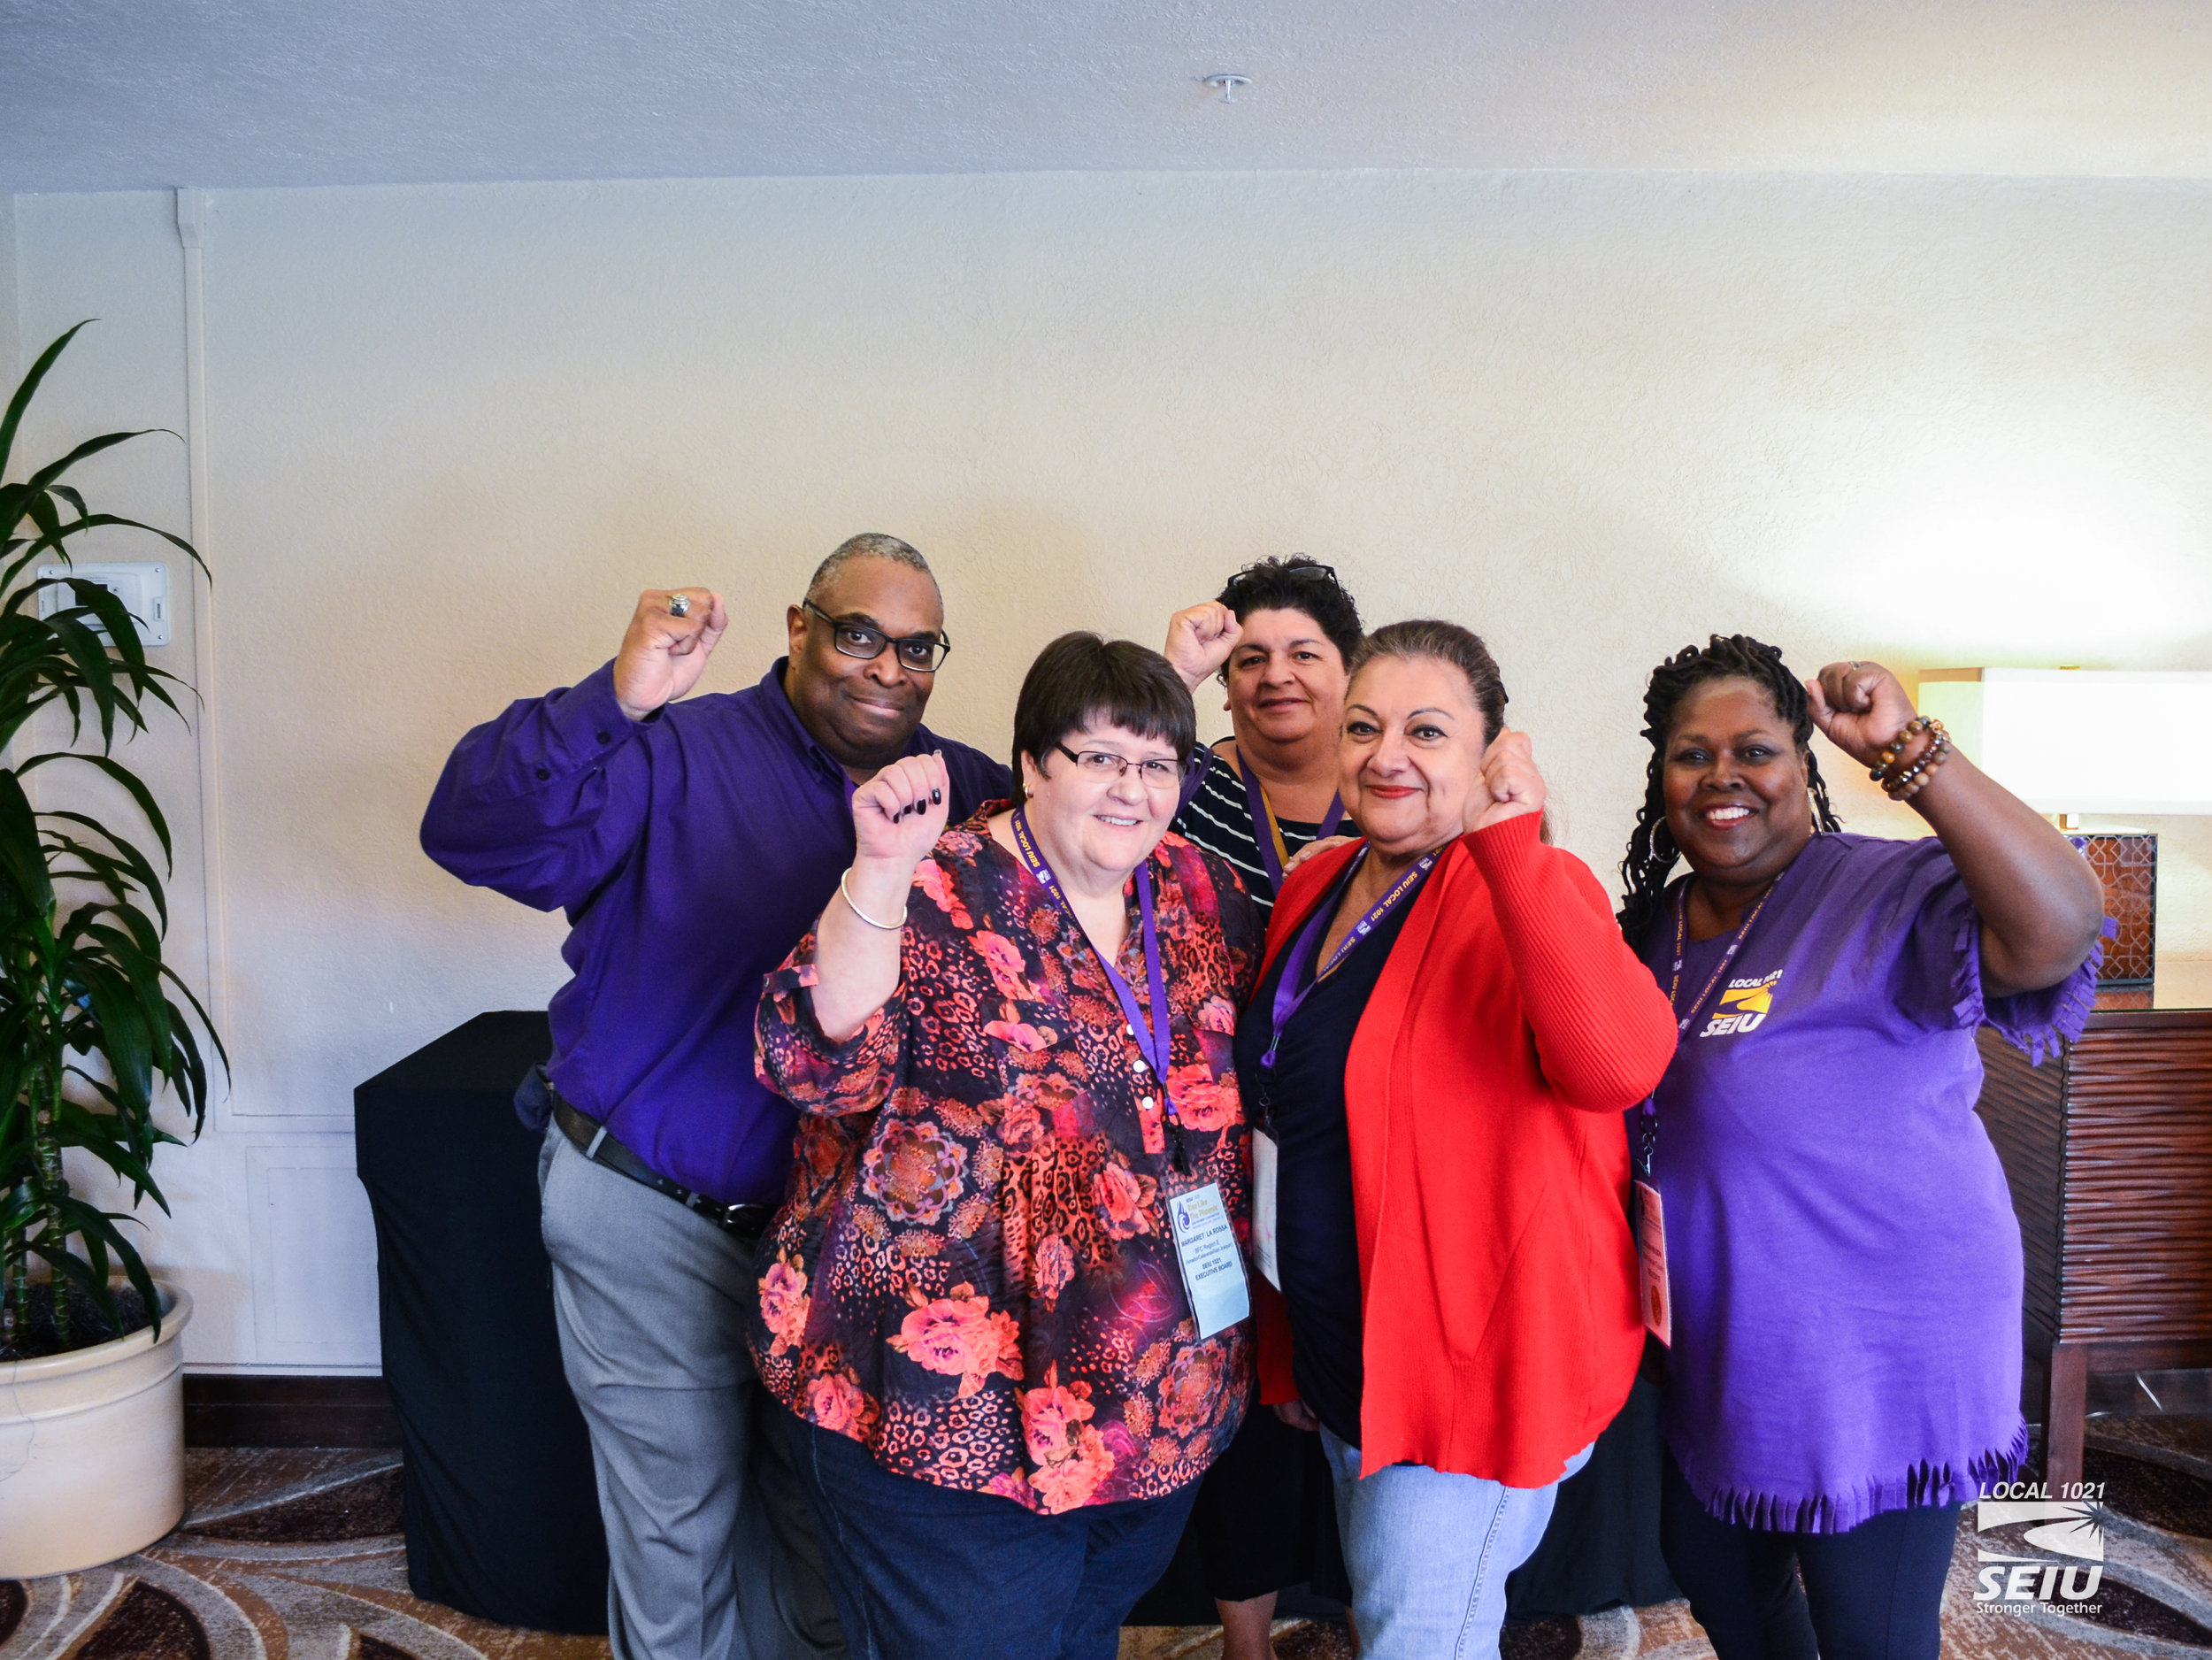 SEIU 1021 Convention Group Portraits-85.jpg